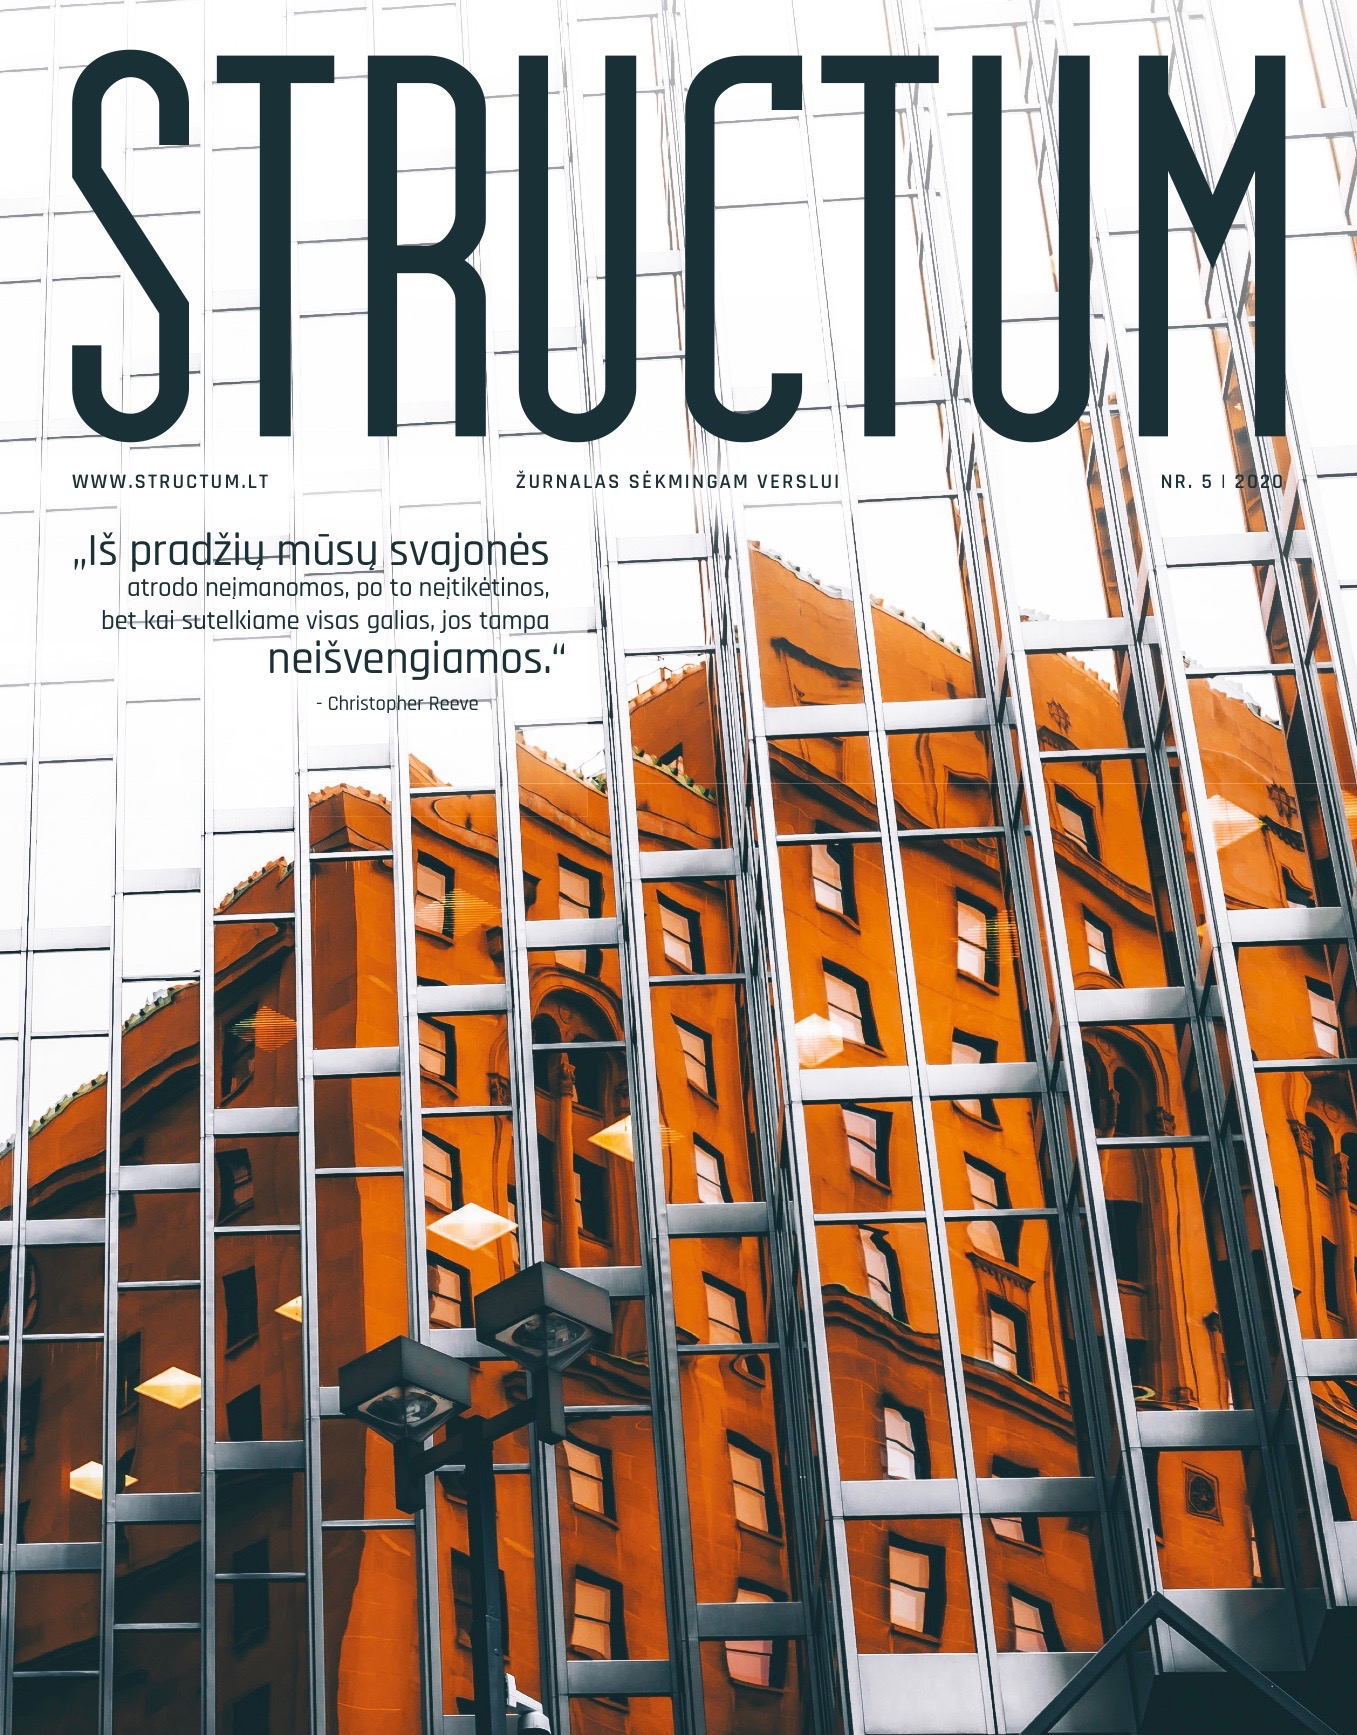 https://structum.lt/wp-content/uploads/2020/05/STRUCTUM_2020_gegužė_WEB.jpeg